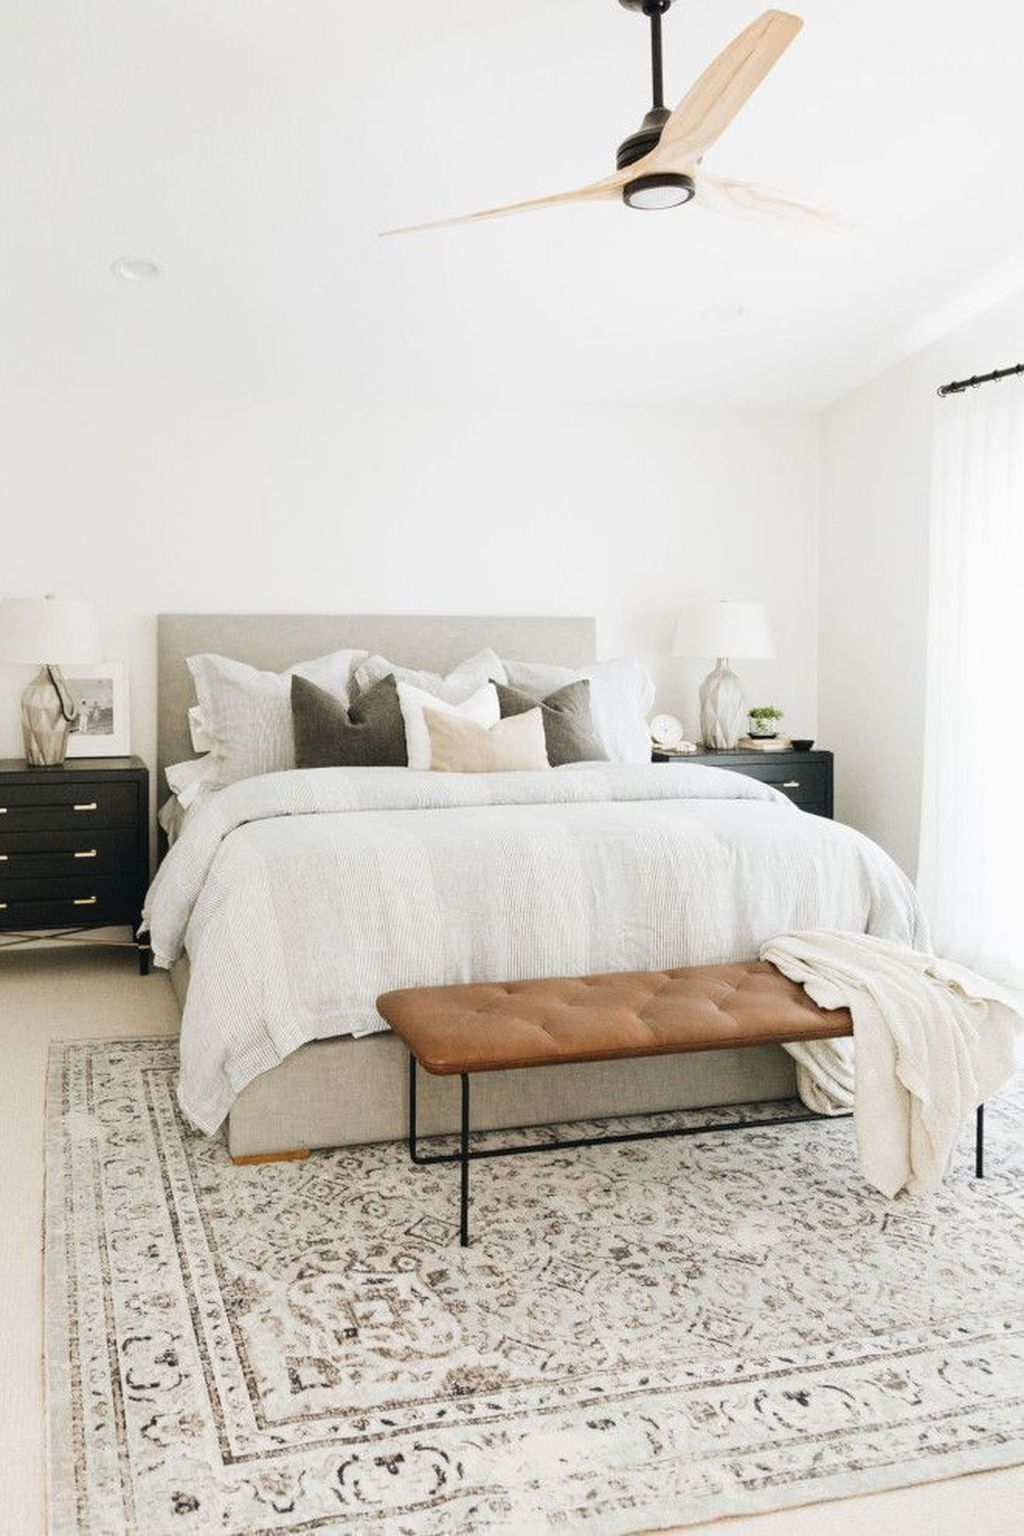 Fabulous White Bedroom Design In The Small Apartment 08 1